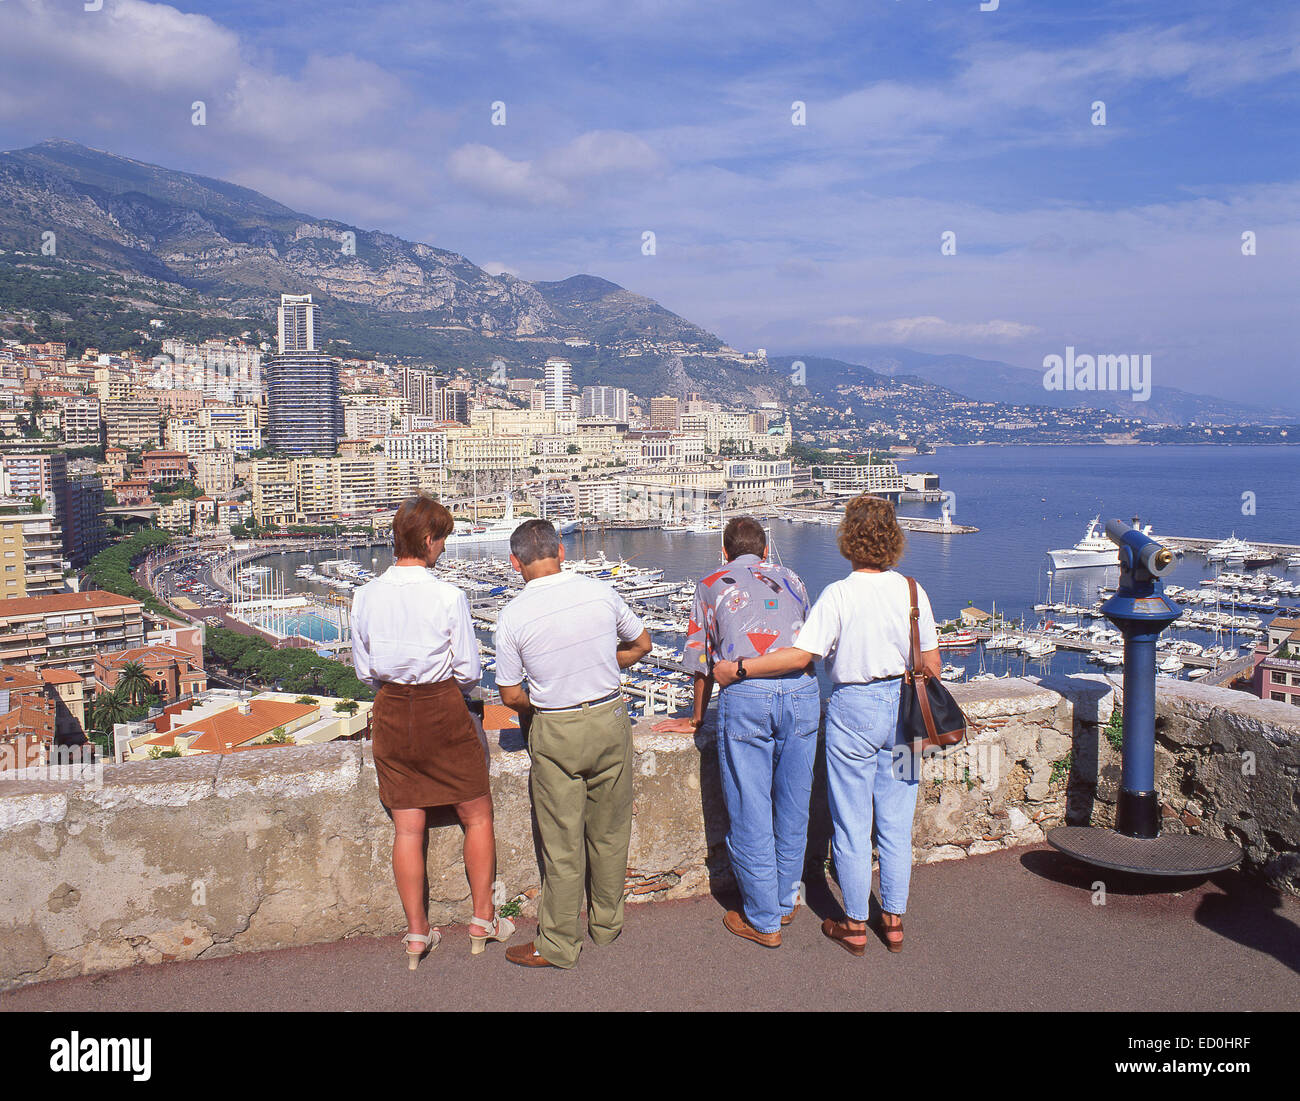 View of harbour and Monte Carlo from La Colle lookout, Principality of Monaco - Stock Image